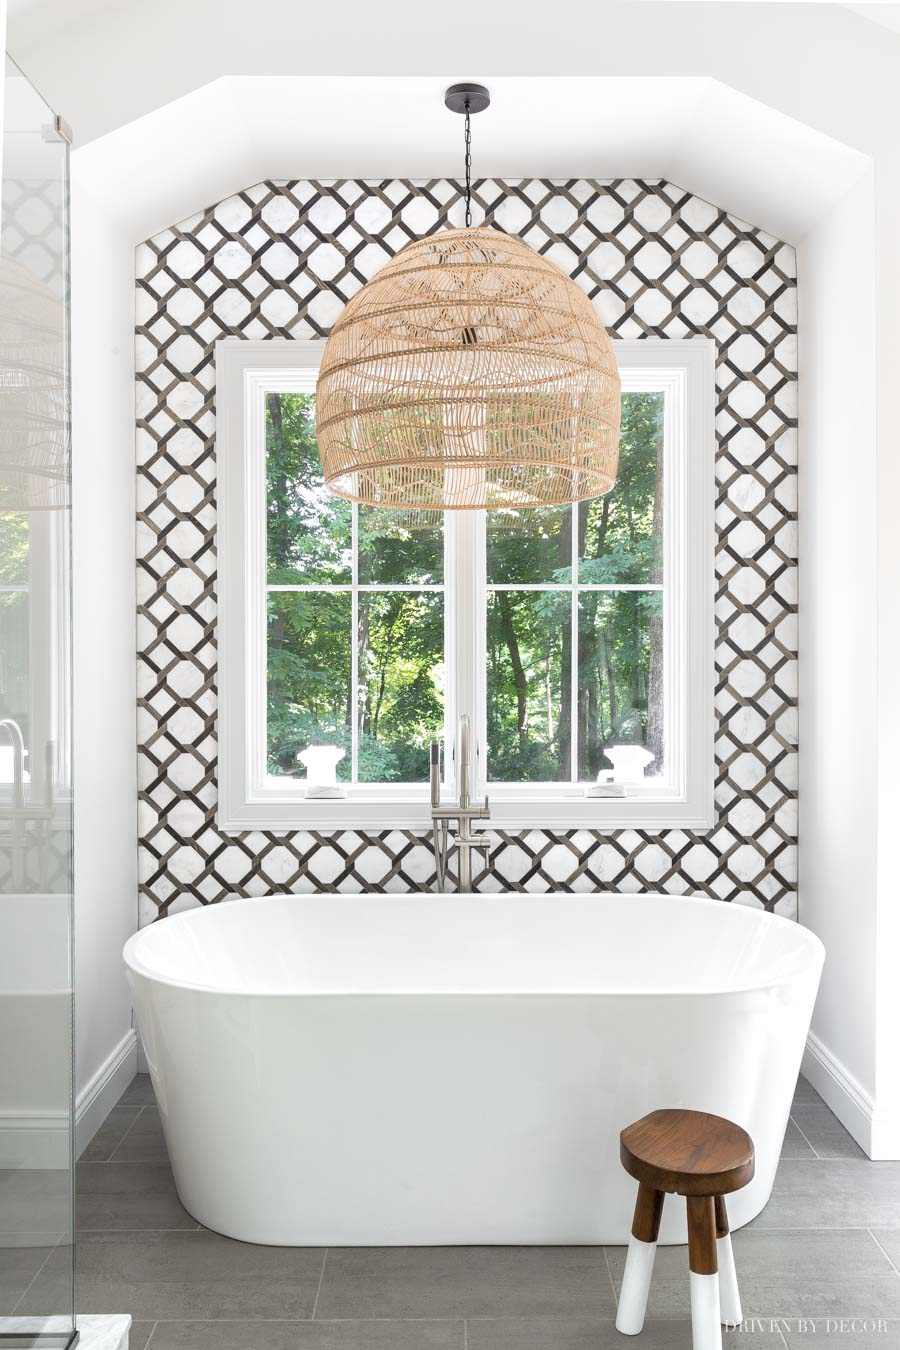 The marble accent tile in this master bathroom is a stunner!